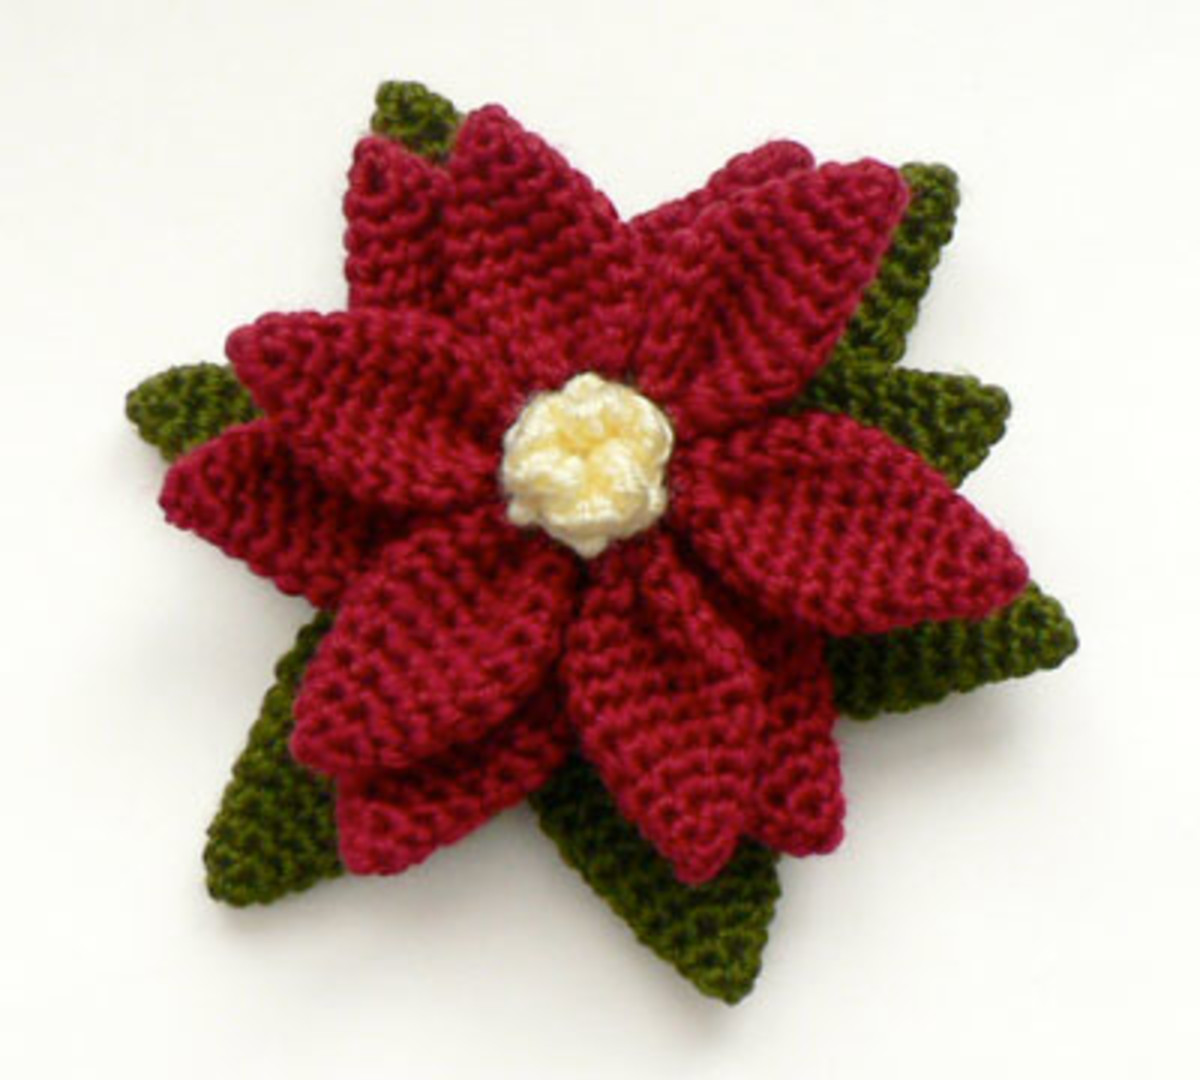 Embellish a Christmas stocking or a crochet beautiful garland to decorate the tree or a mantle